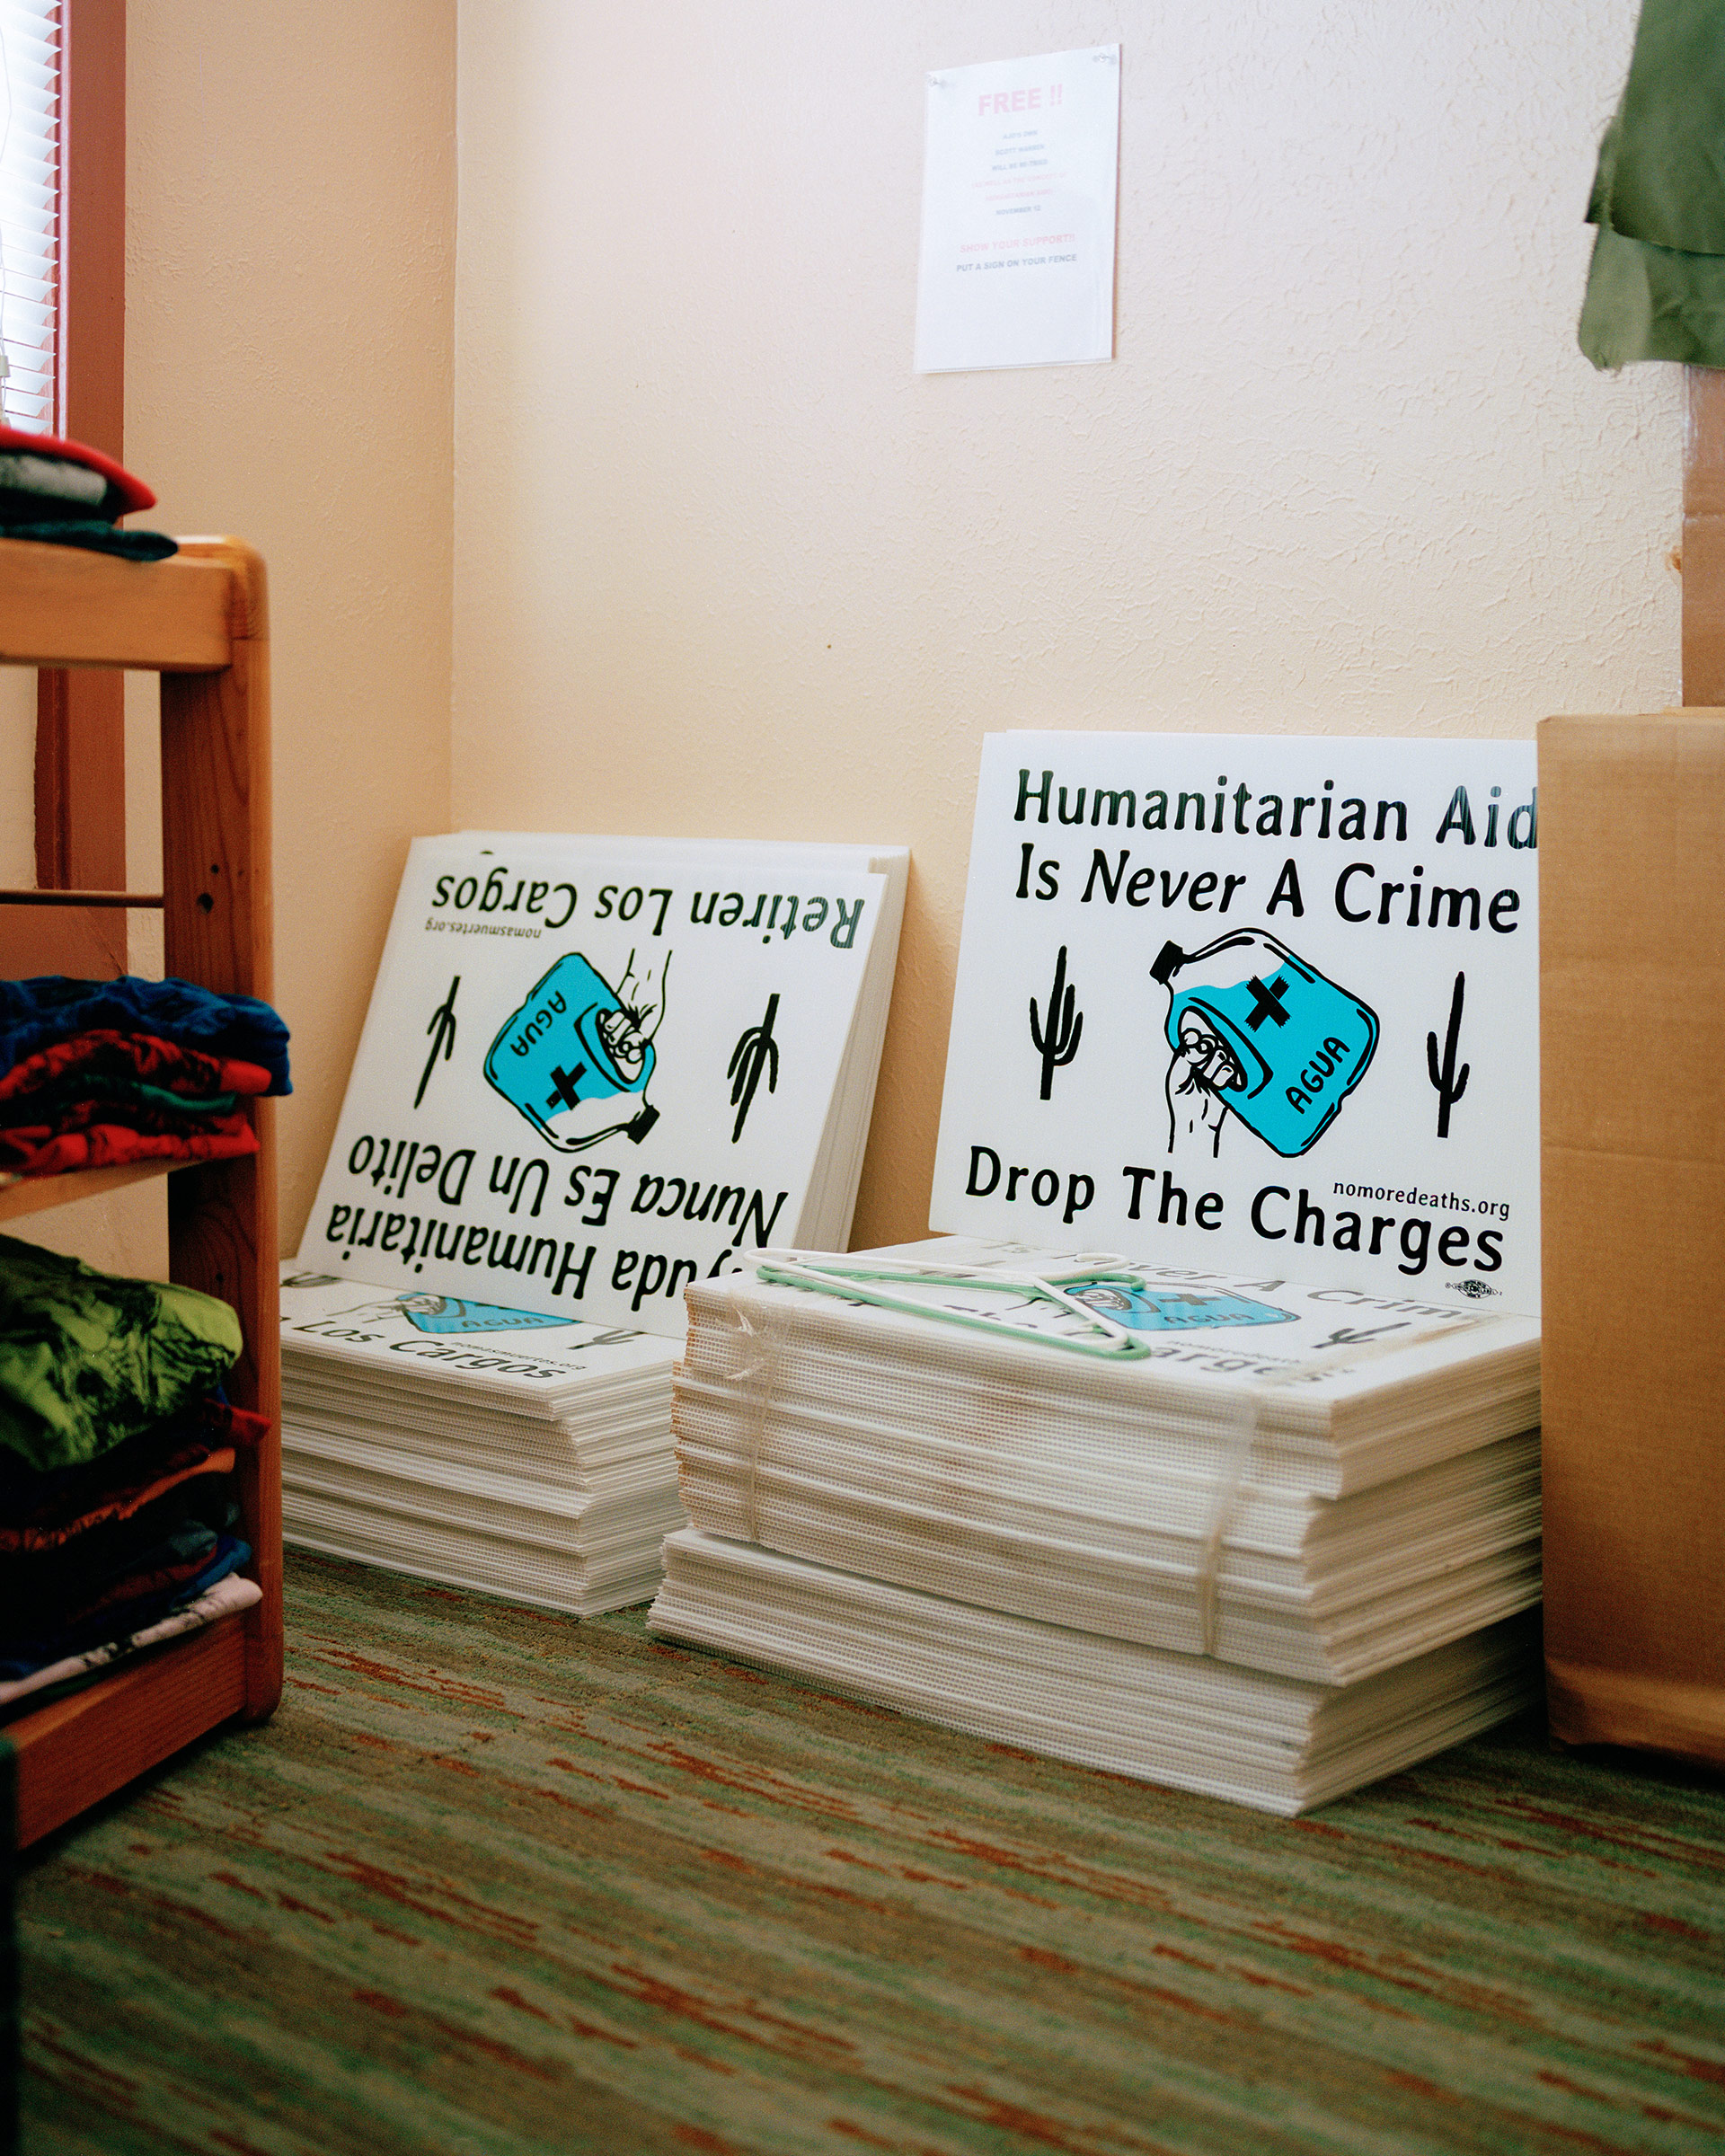 Signs in support of Warren that are available for businesses and homes sit in the Ajo Humanitarian Aid Office on Sept. 17.